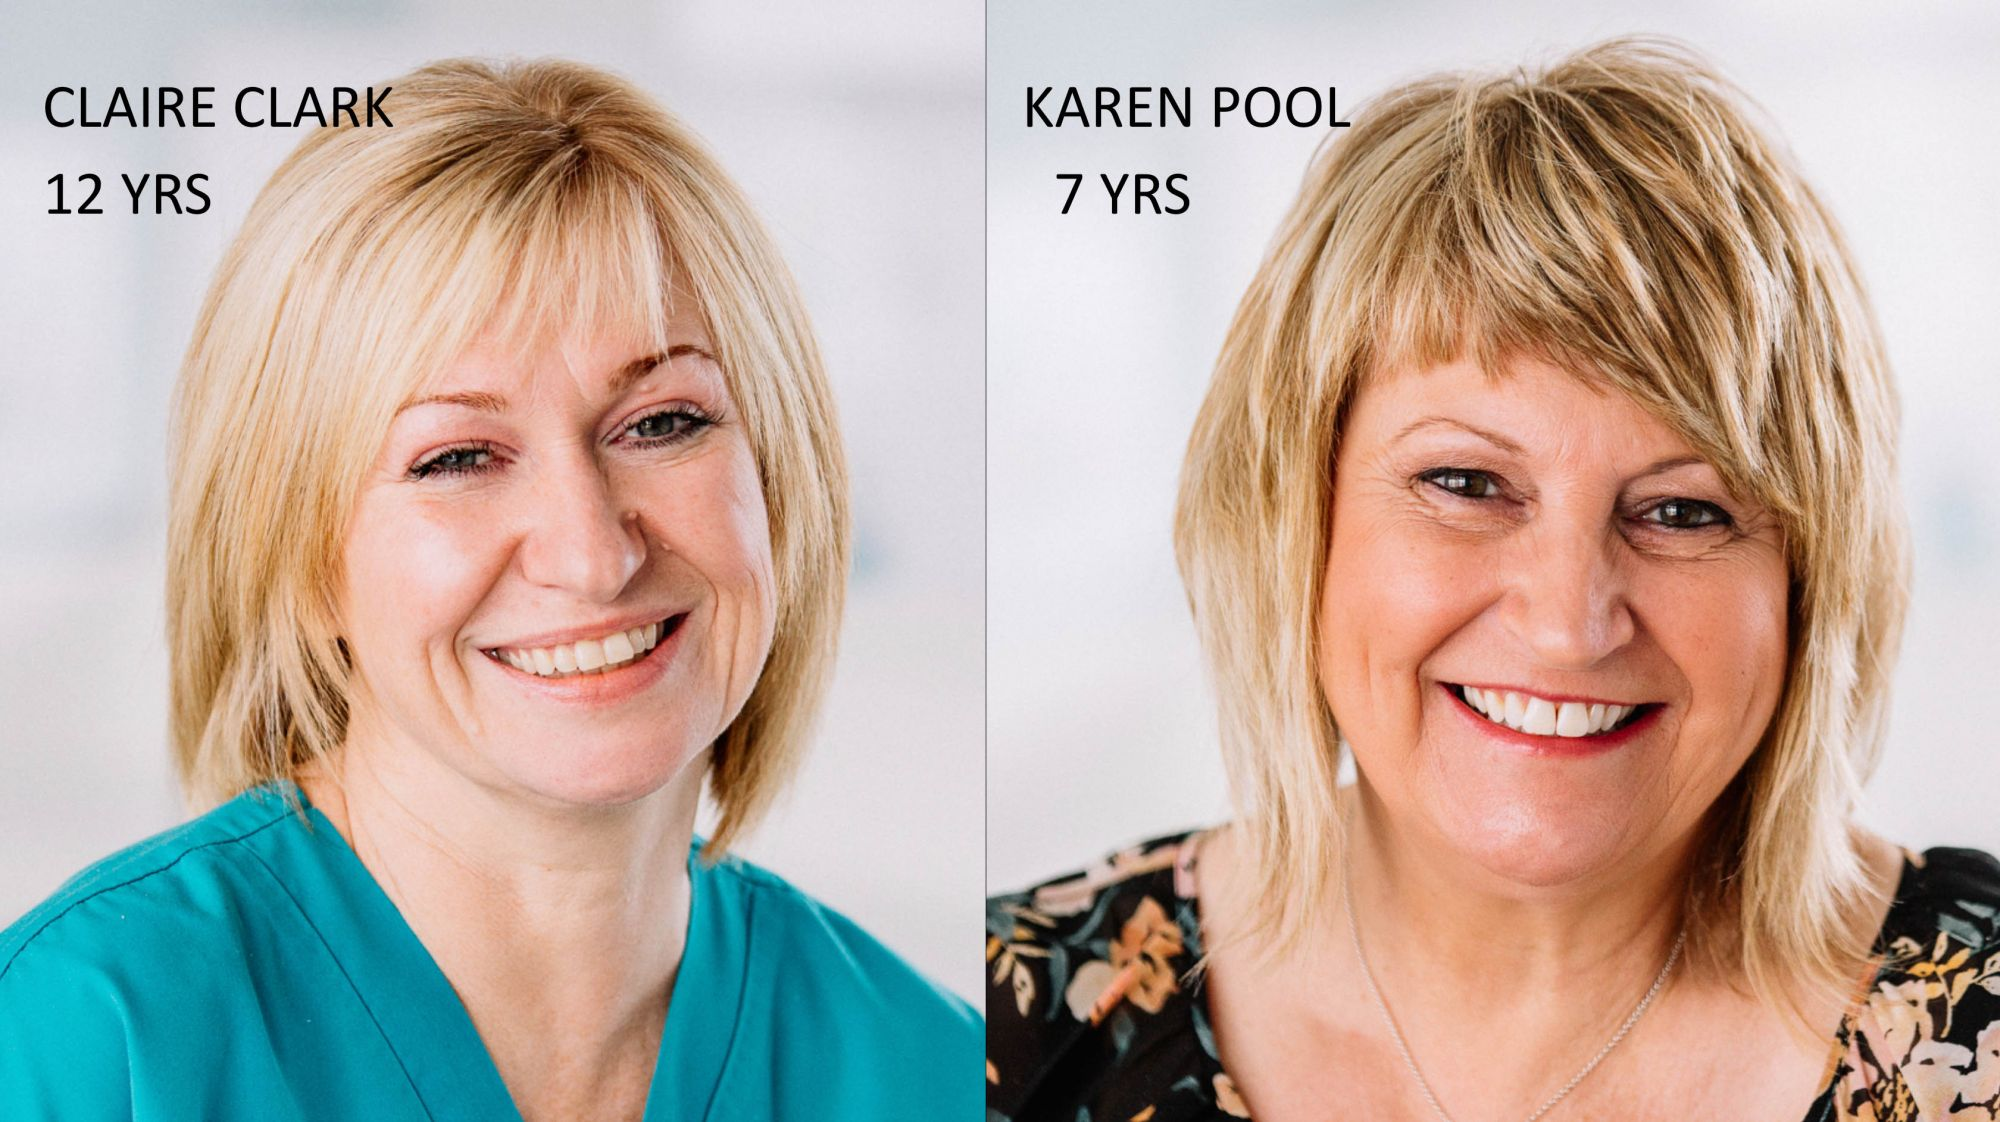 Our referral practice has been seeing patients for 12 years since September 7 2007